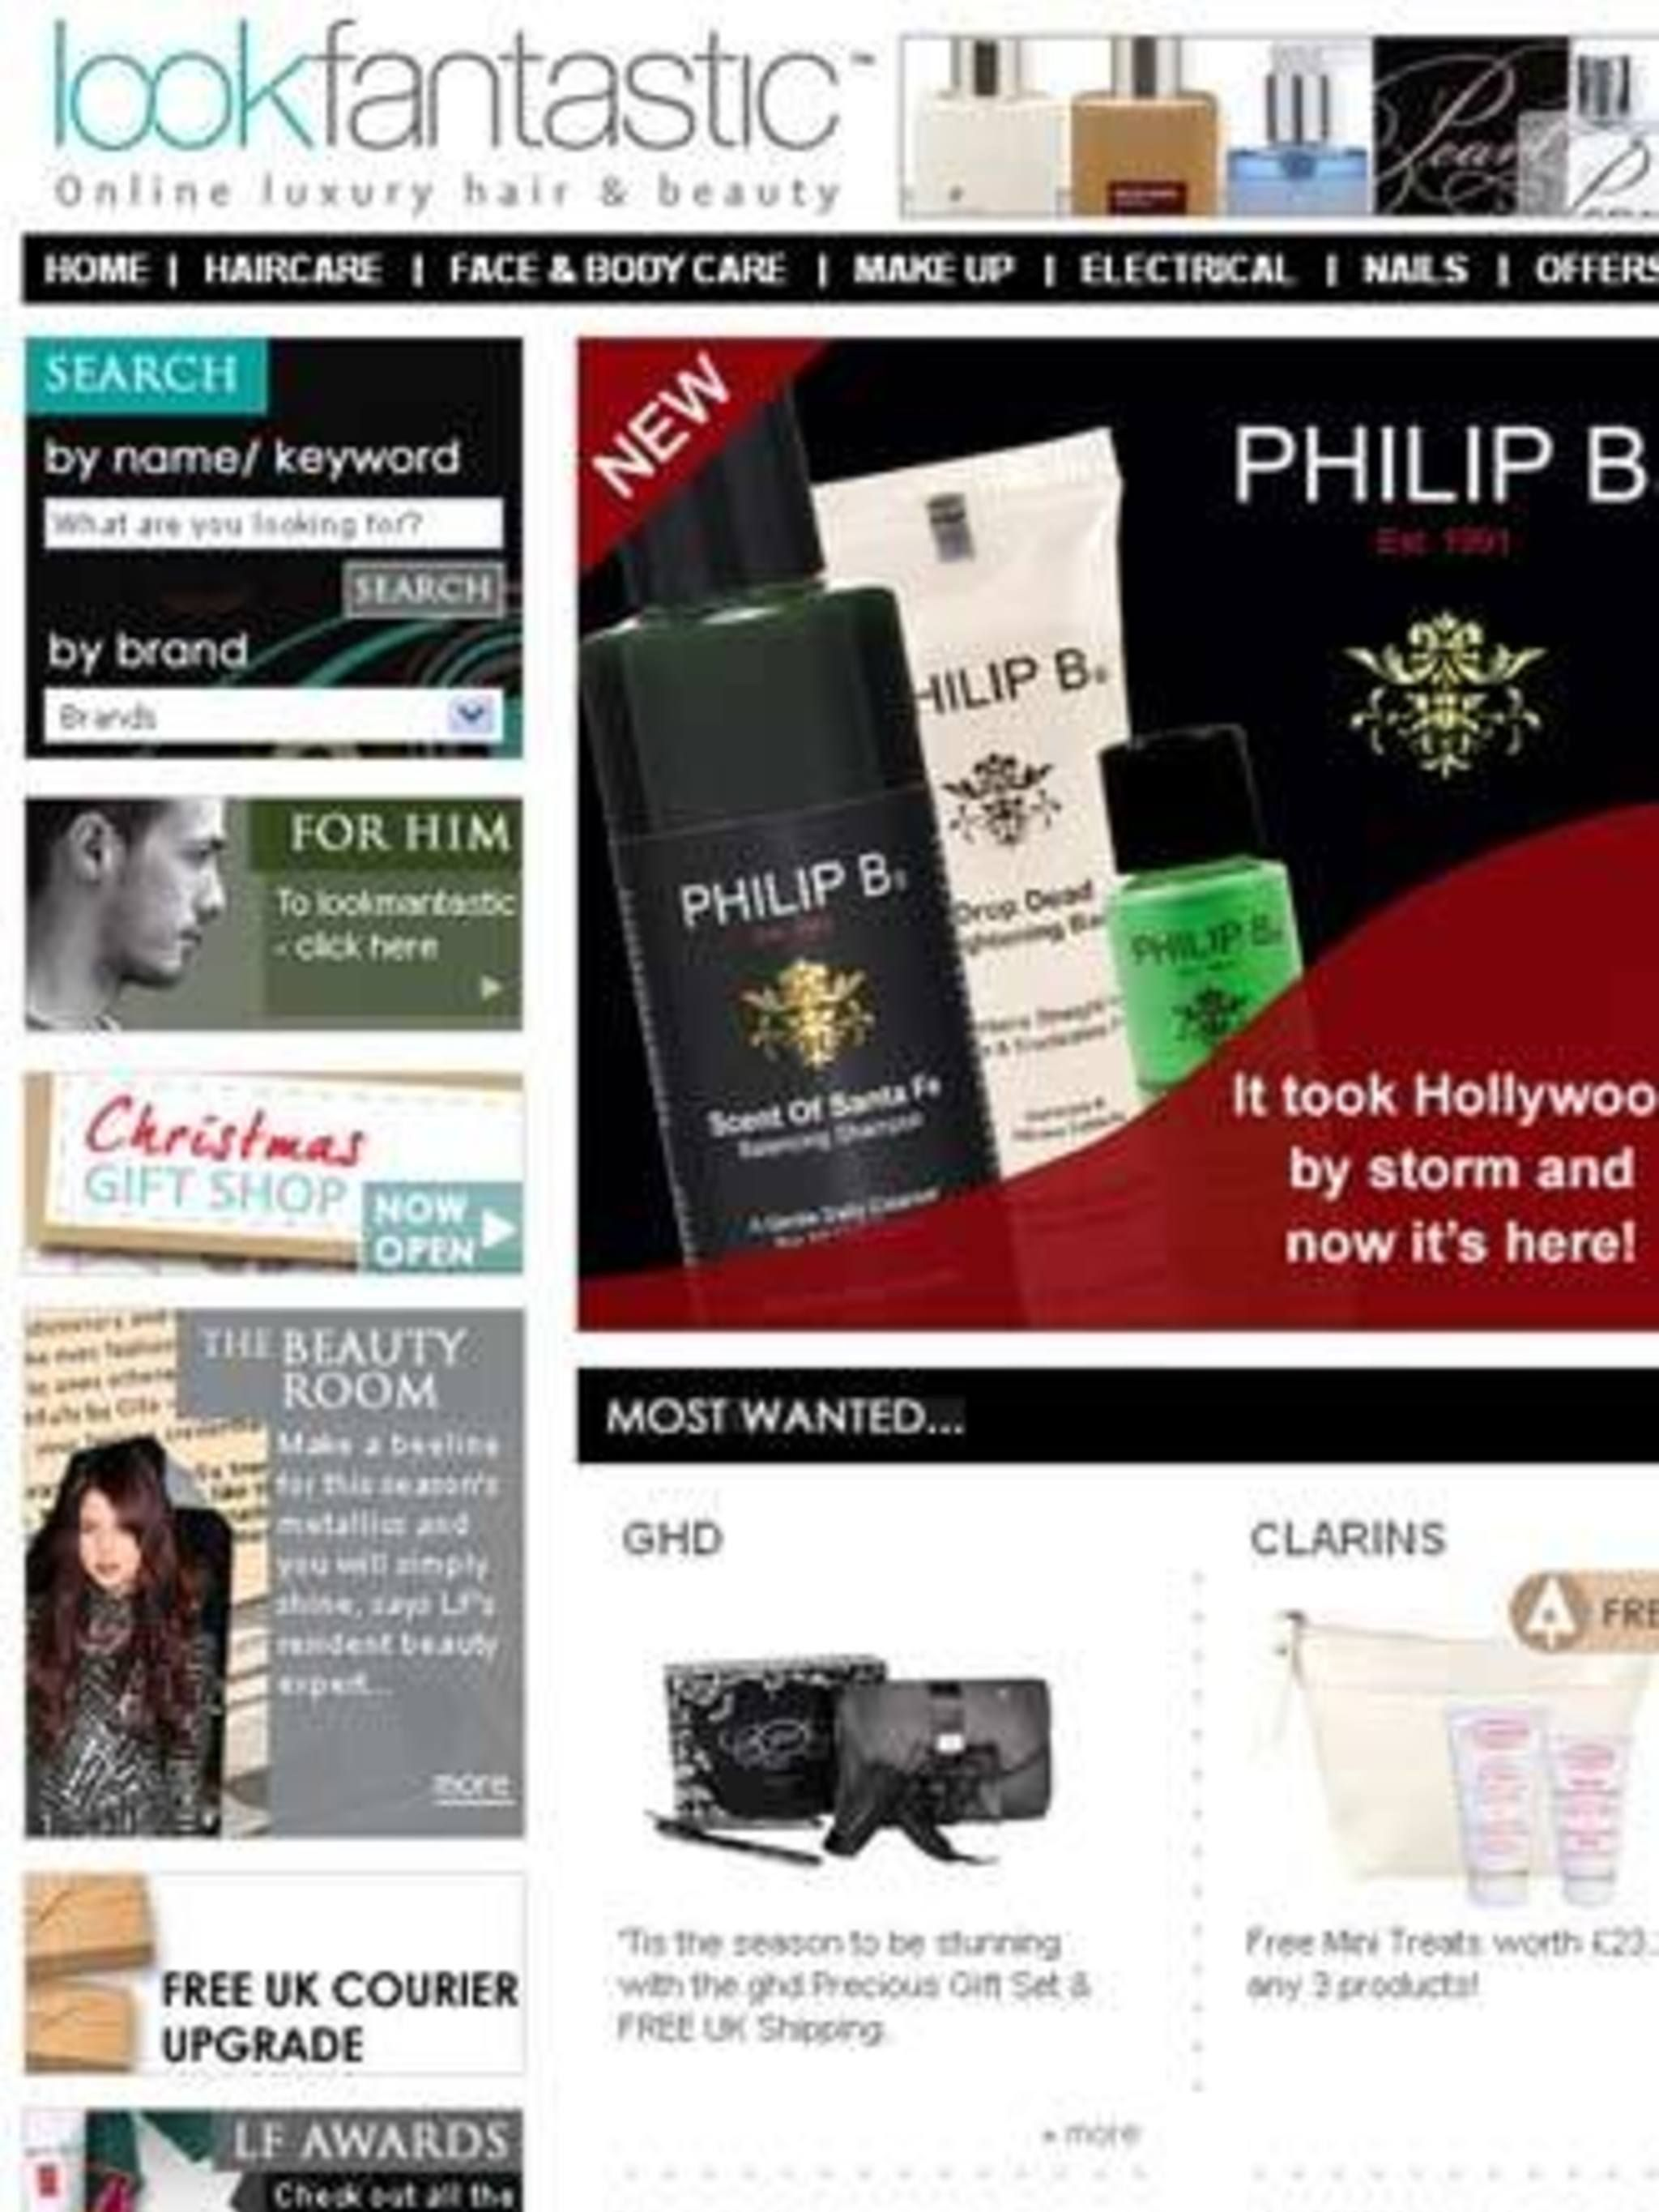 <p>A really simple - and pretty addictive - website Look Fantastic (and Look Mantastic!) have everything you could want. As with most sites you can shop by brand and product type - haircare, make up, nails etc; but what makes this site really interesting